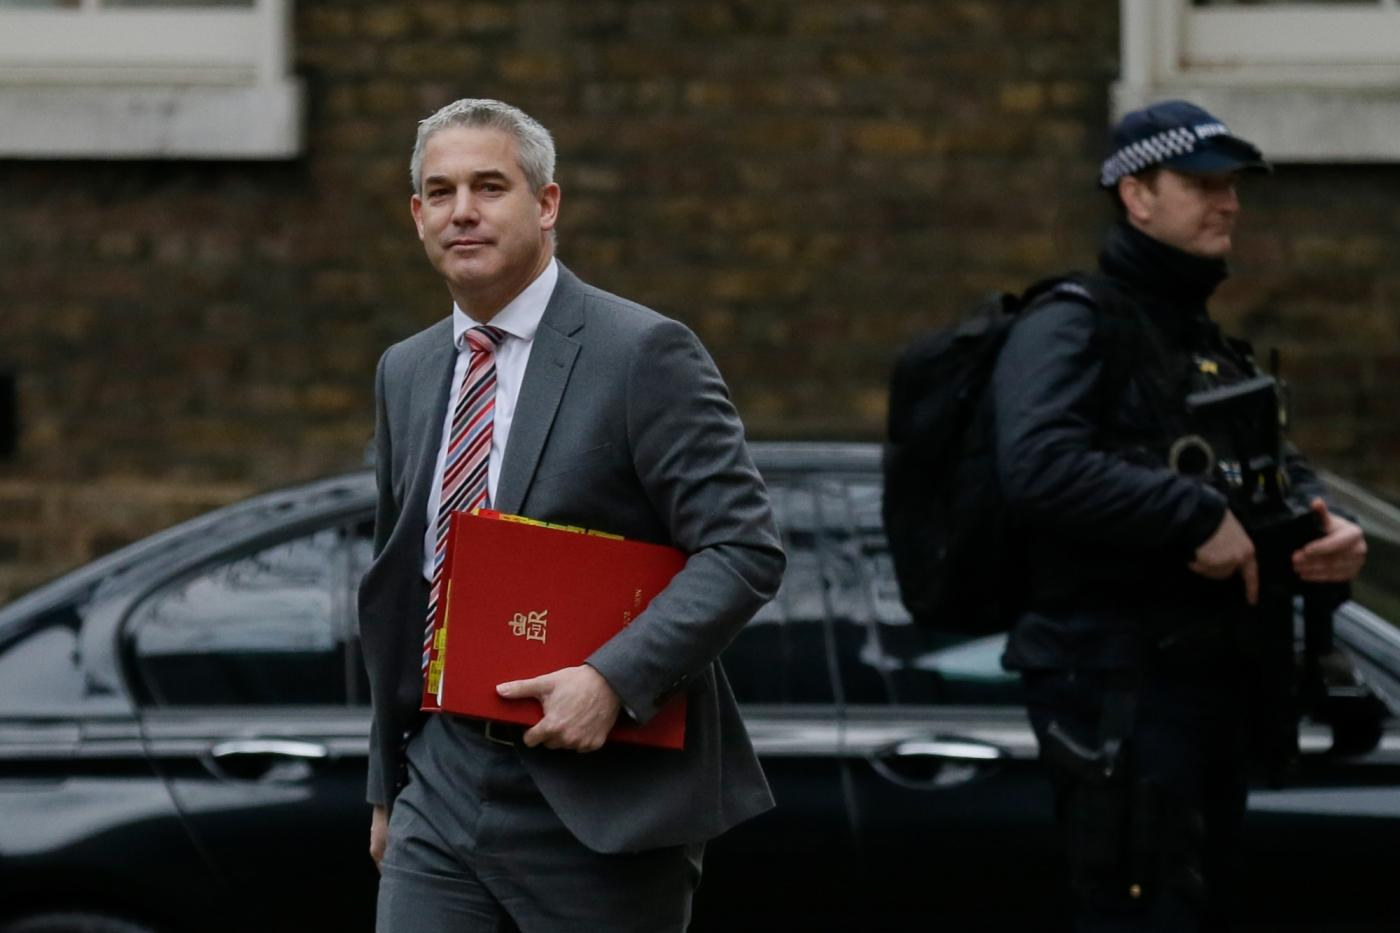 LONDON, Jan. 15, 2019 (Xinhua) -- British Brexit Secretary Stephen Barclay (L) arrives for a cabinet meeting at 10 Downing Street in London, Britain, on Jan. 15. 2019. A delayed parliamentary vote on the Brexit deal is scheduled to take place on Tuesday. (Xinhua/Tim Ireland/Li Muzi) by .